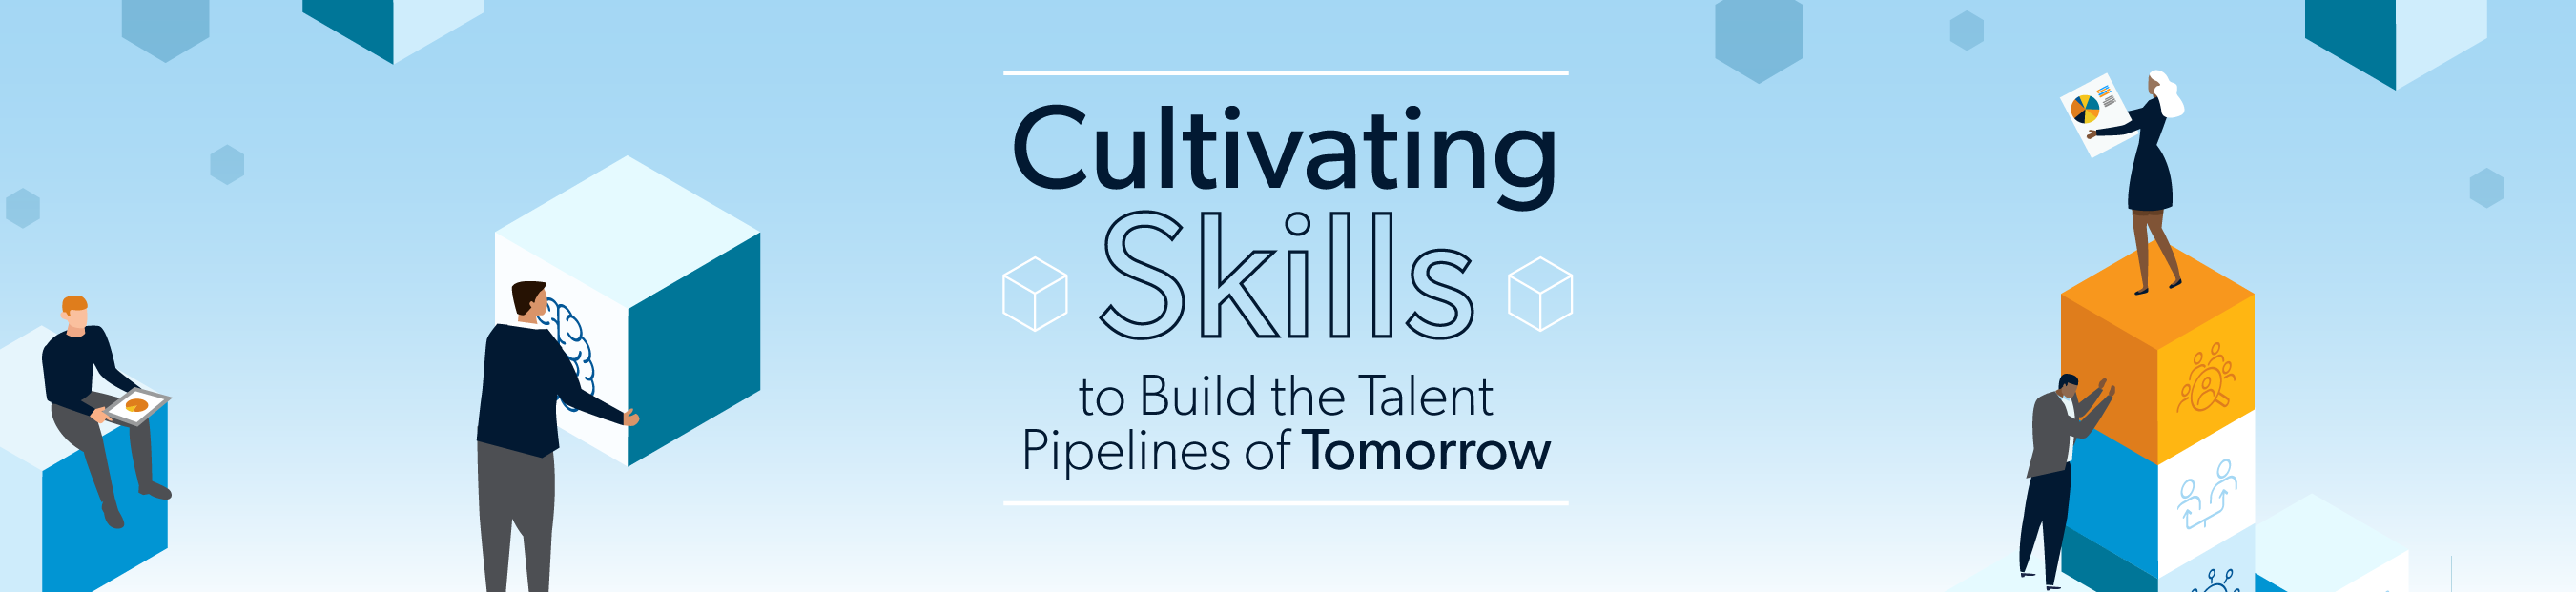 Cultivating Skills to Build the Talent Pipelines Graphic